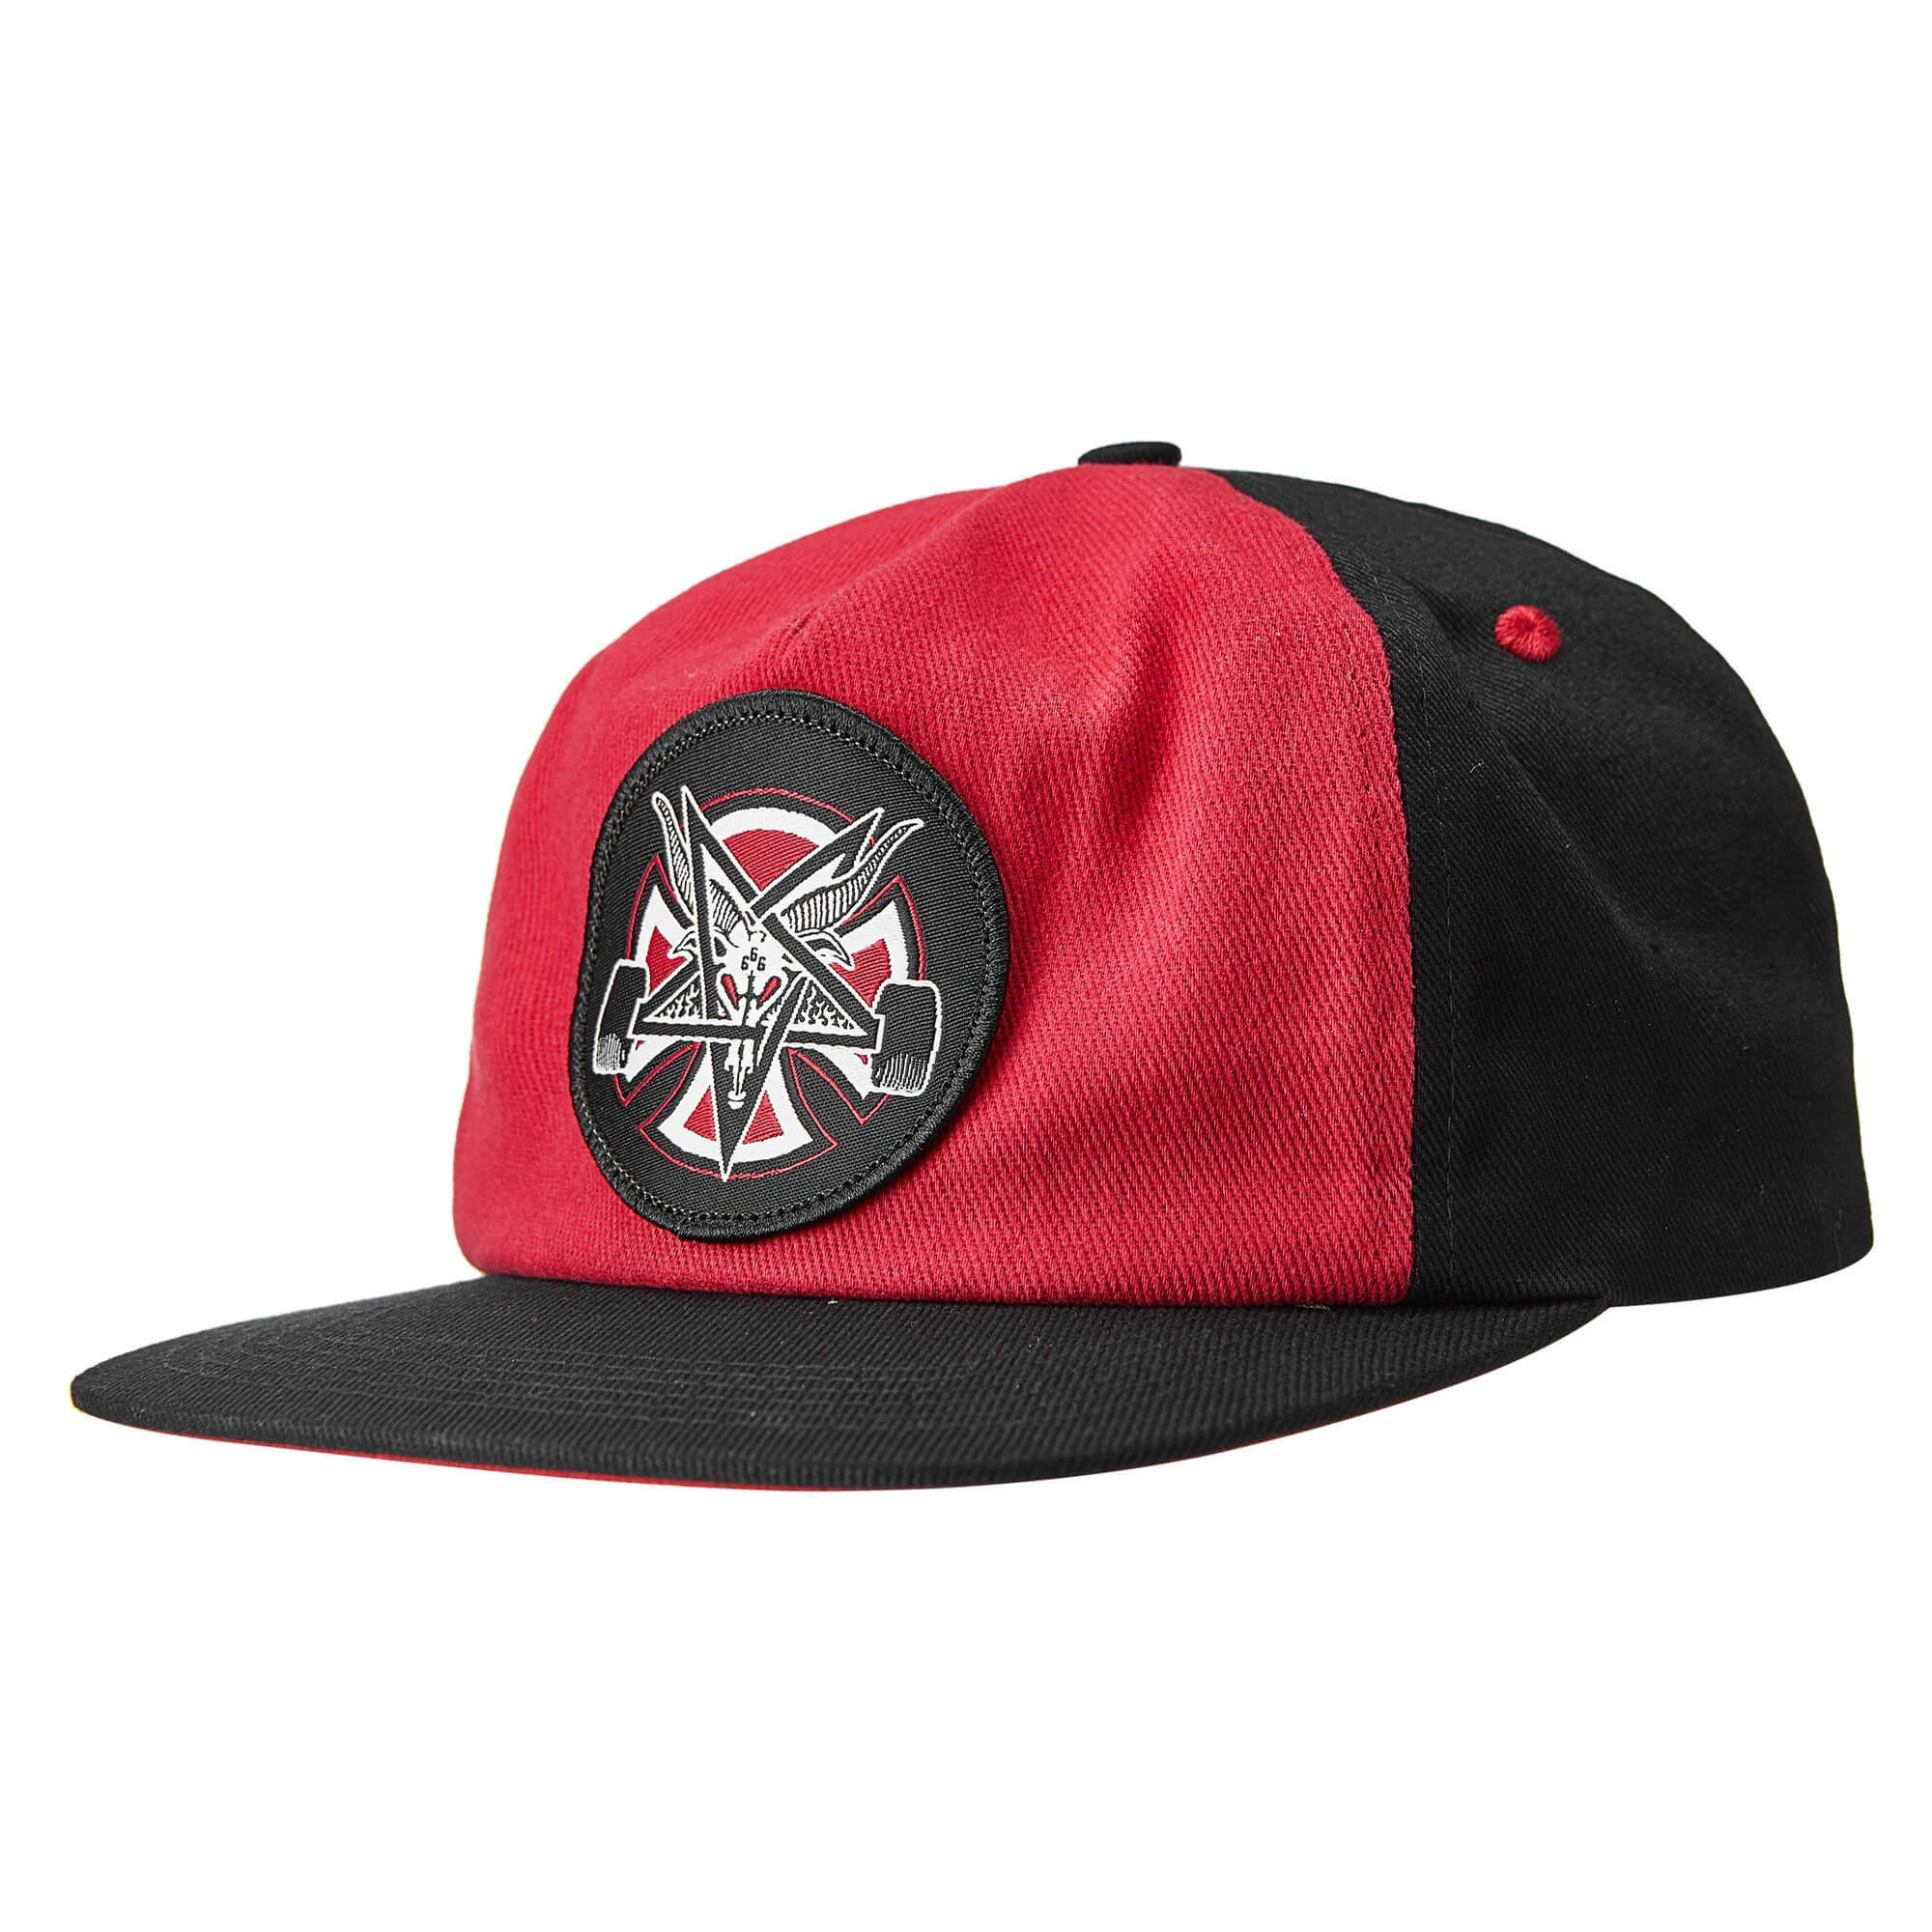 Кепка INDEPENDENT x THRASHER Pentagram Cross Snapback (Cardinal/Black)